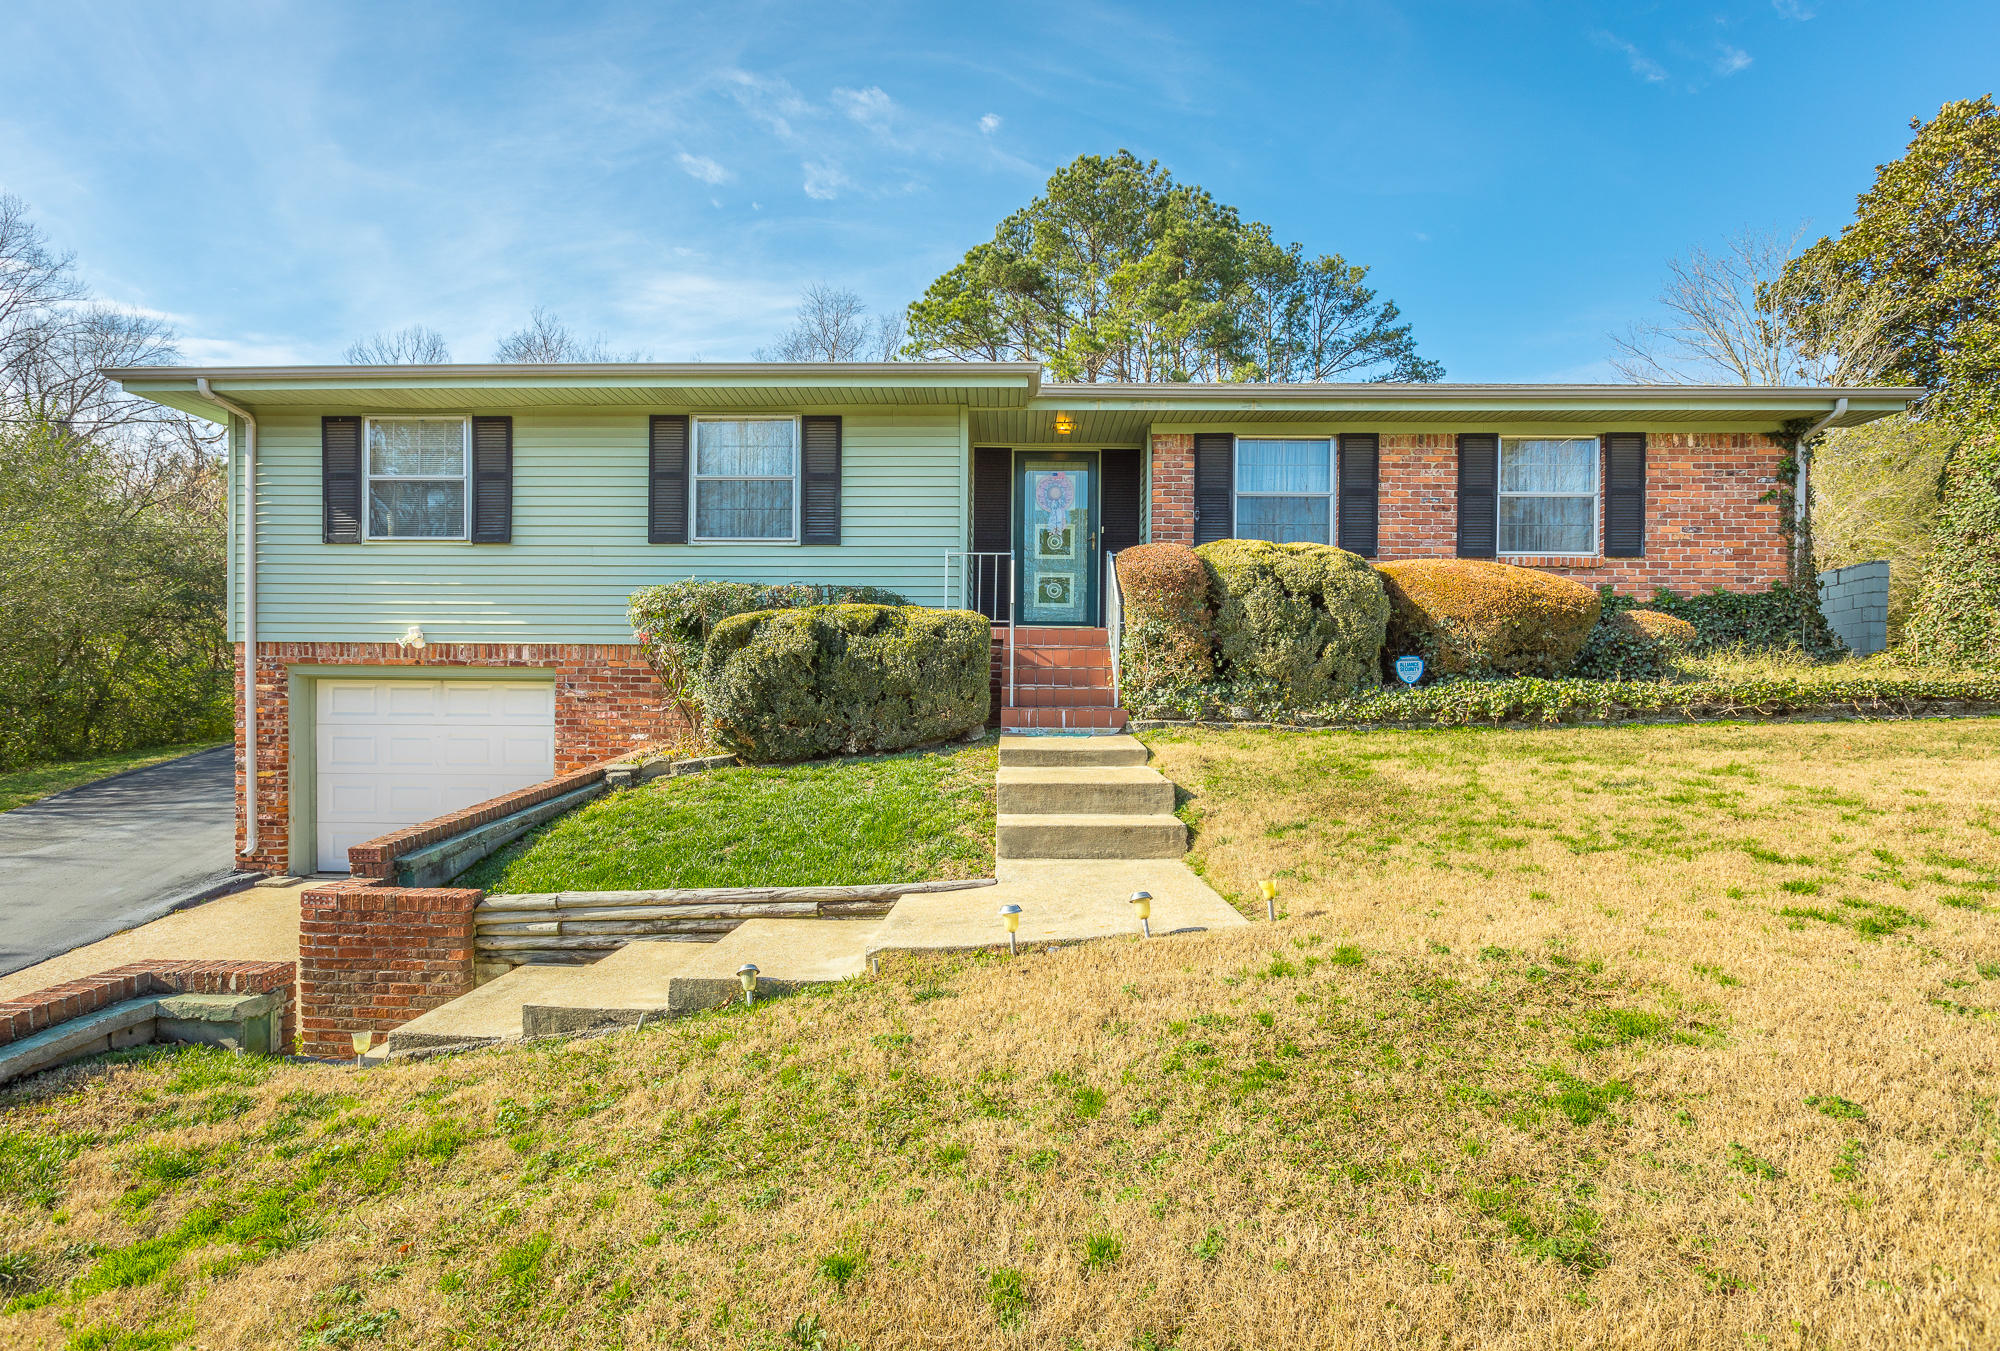 1919 Julian Ridge Road Chattanooga #homeforsaleinchattanooga, #ChattanoogaHomeForSale, #ThePaulaMcDanielGroup, #Chattanoogarealestateforsale, #Chattanoogarealestateforsale, #allbrickhomeforsale#, ThePaulaMcDanielGroup, #homeforsalewith - The Paula McDaniel Group With Real Estate Partners Chattanooga LLC Luxury homes for sale in Chattanooga and N. GA by The Paula McDaniel Group. Chattanooga homes and land for sale by The Paula McDaniel Group with Real Estate Partners Chattanooga LLC